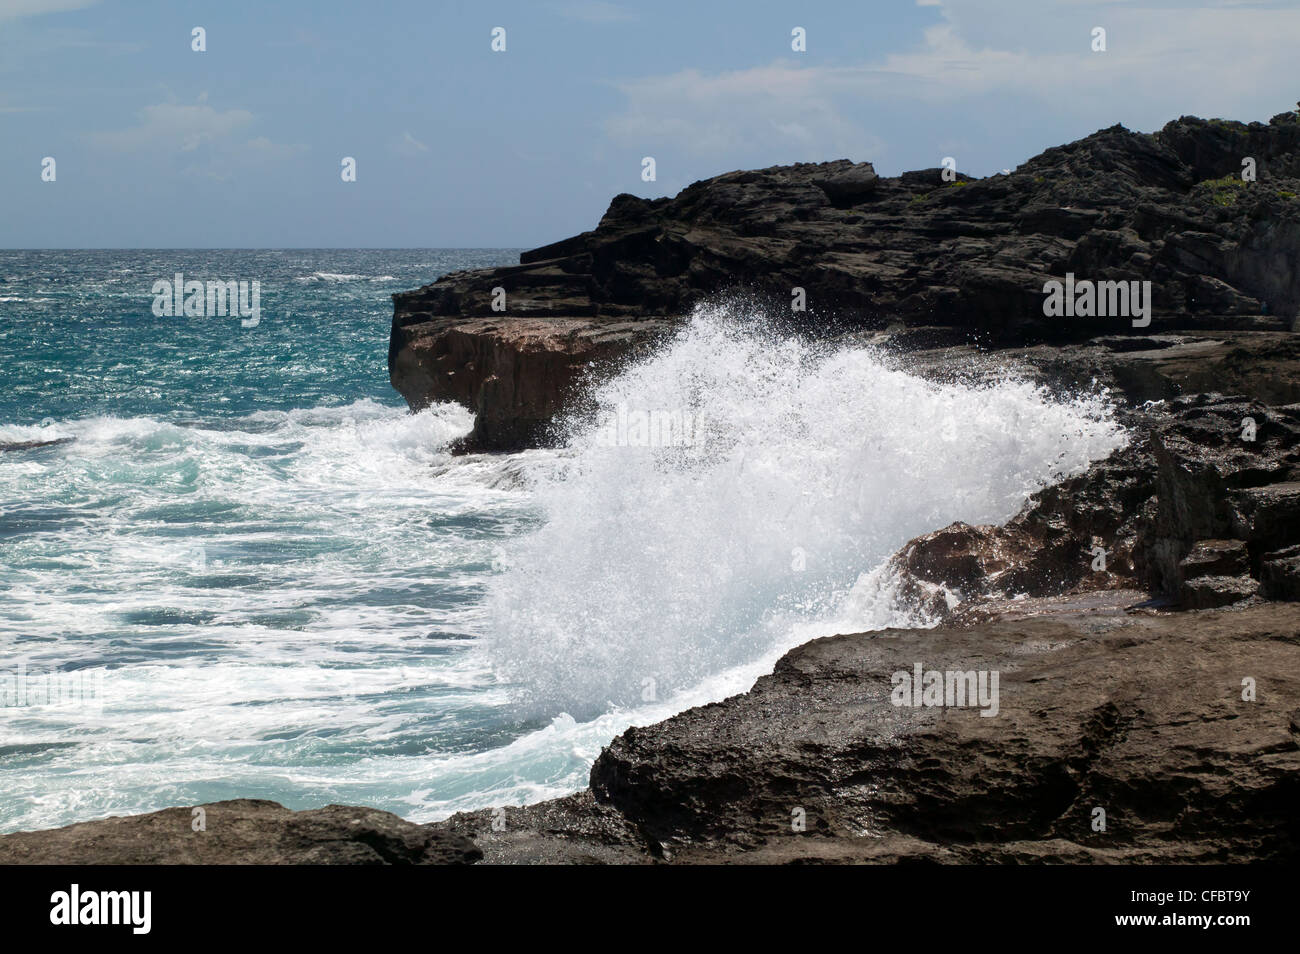 Waves crash into the South shore section of Spittal Pond Nature Reserve, Bermuda - Stock Image